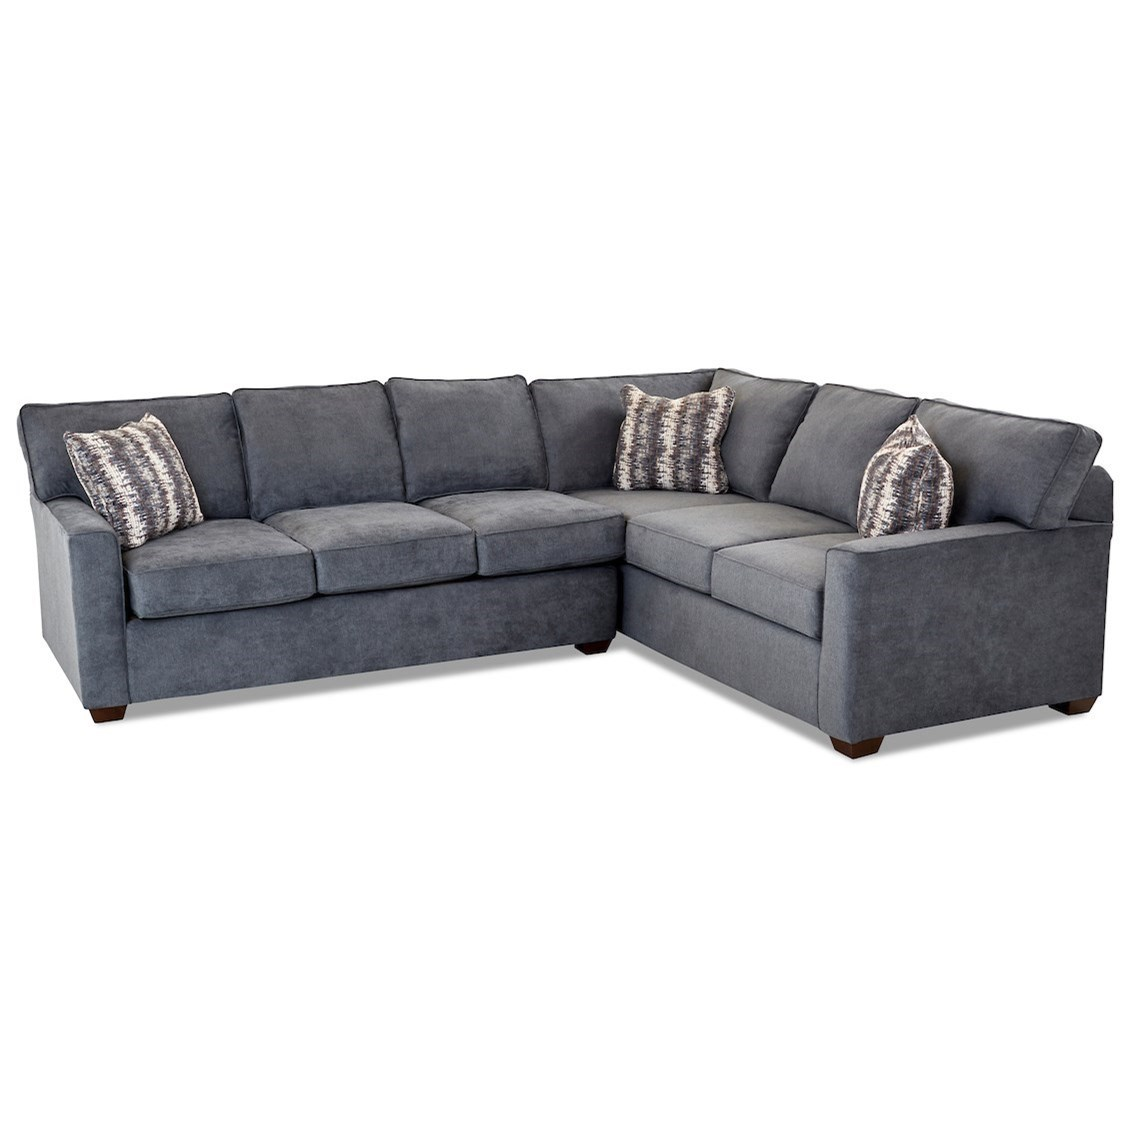 Pantego 2 Piece Sectional Sofa w/ RAF Corner by Klaussner at Johnny Janosik